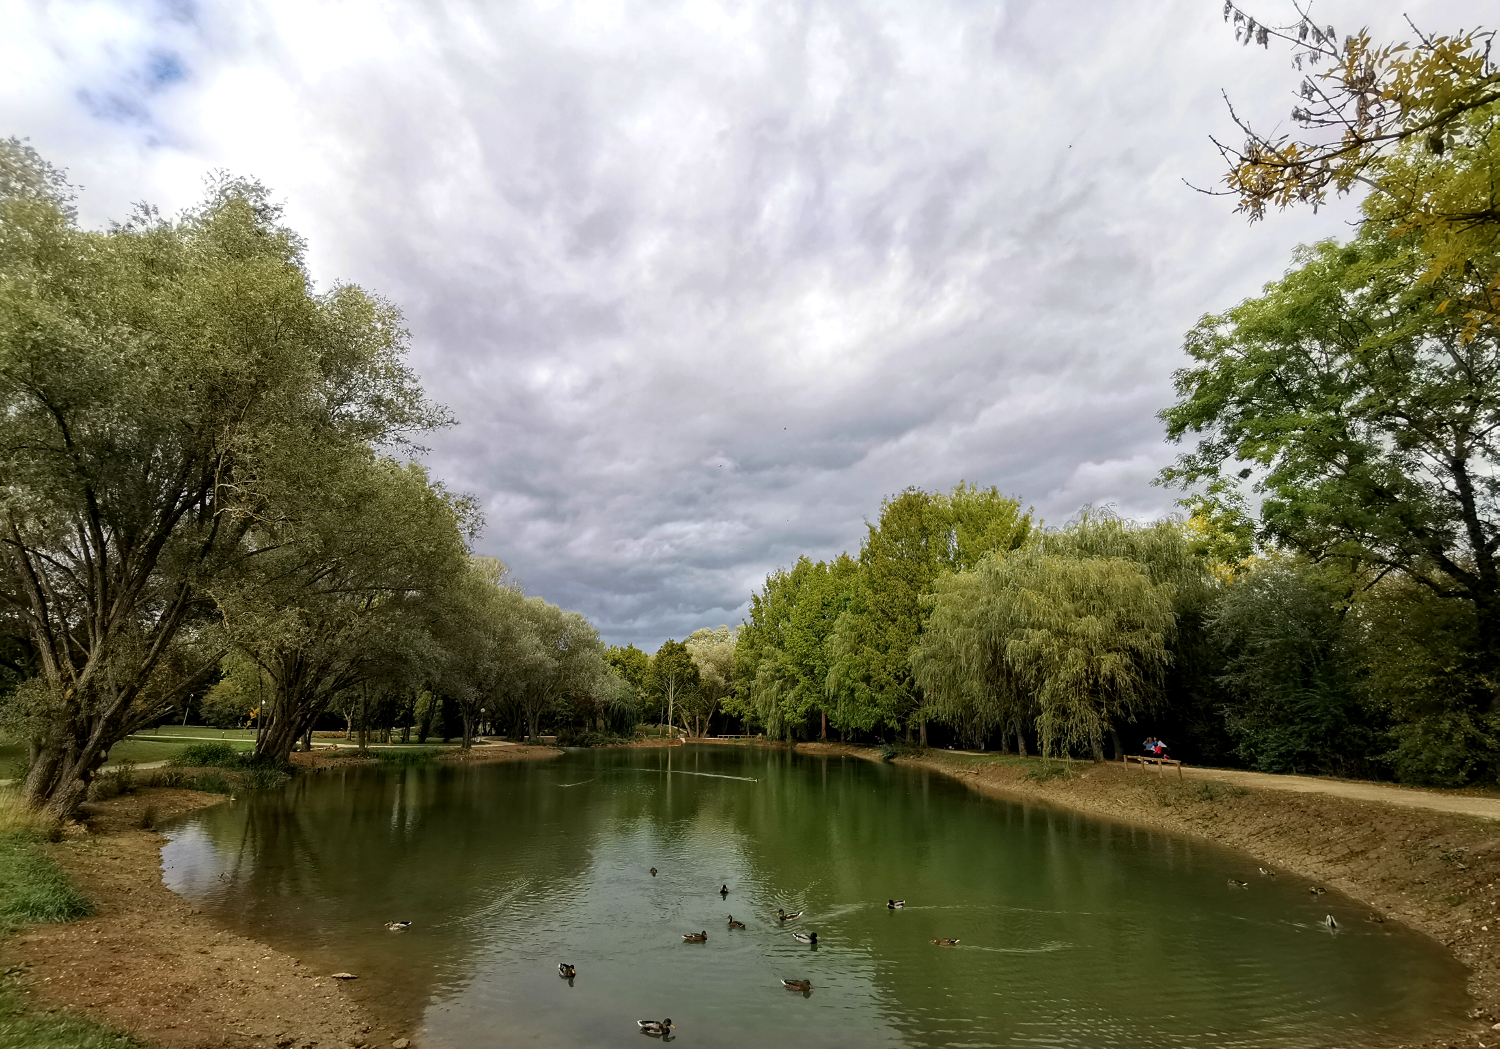 Parc de l'Embanie - Heillecourt - 28/09/2019